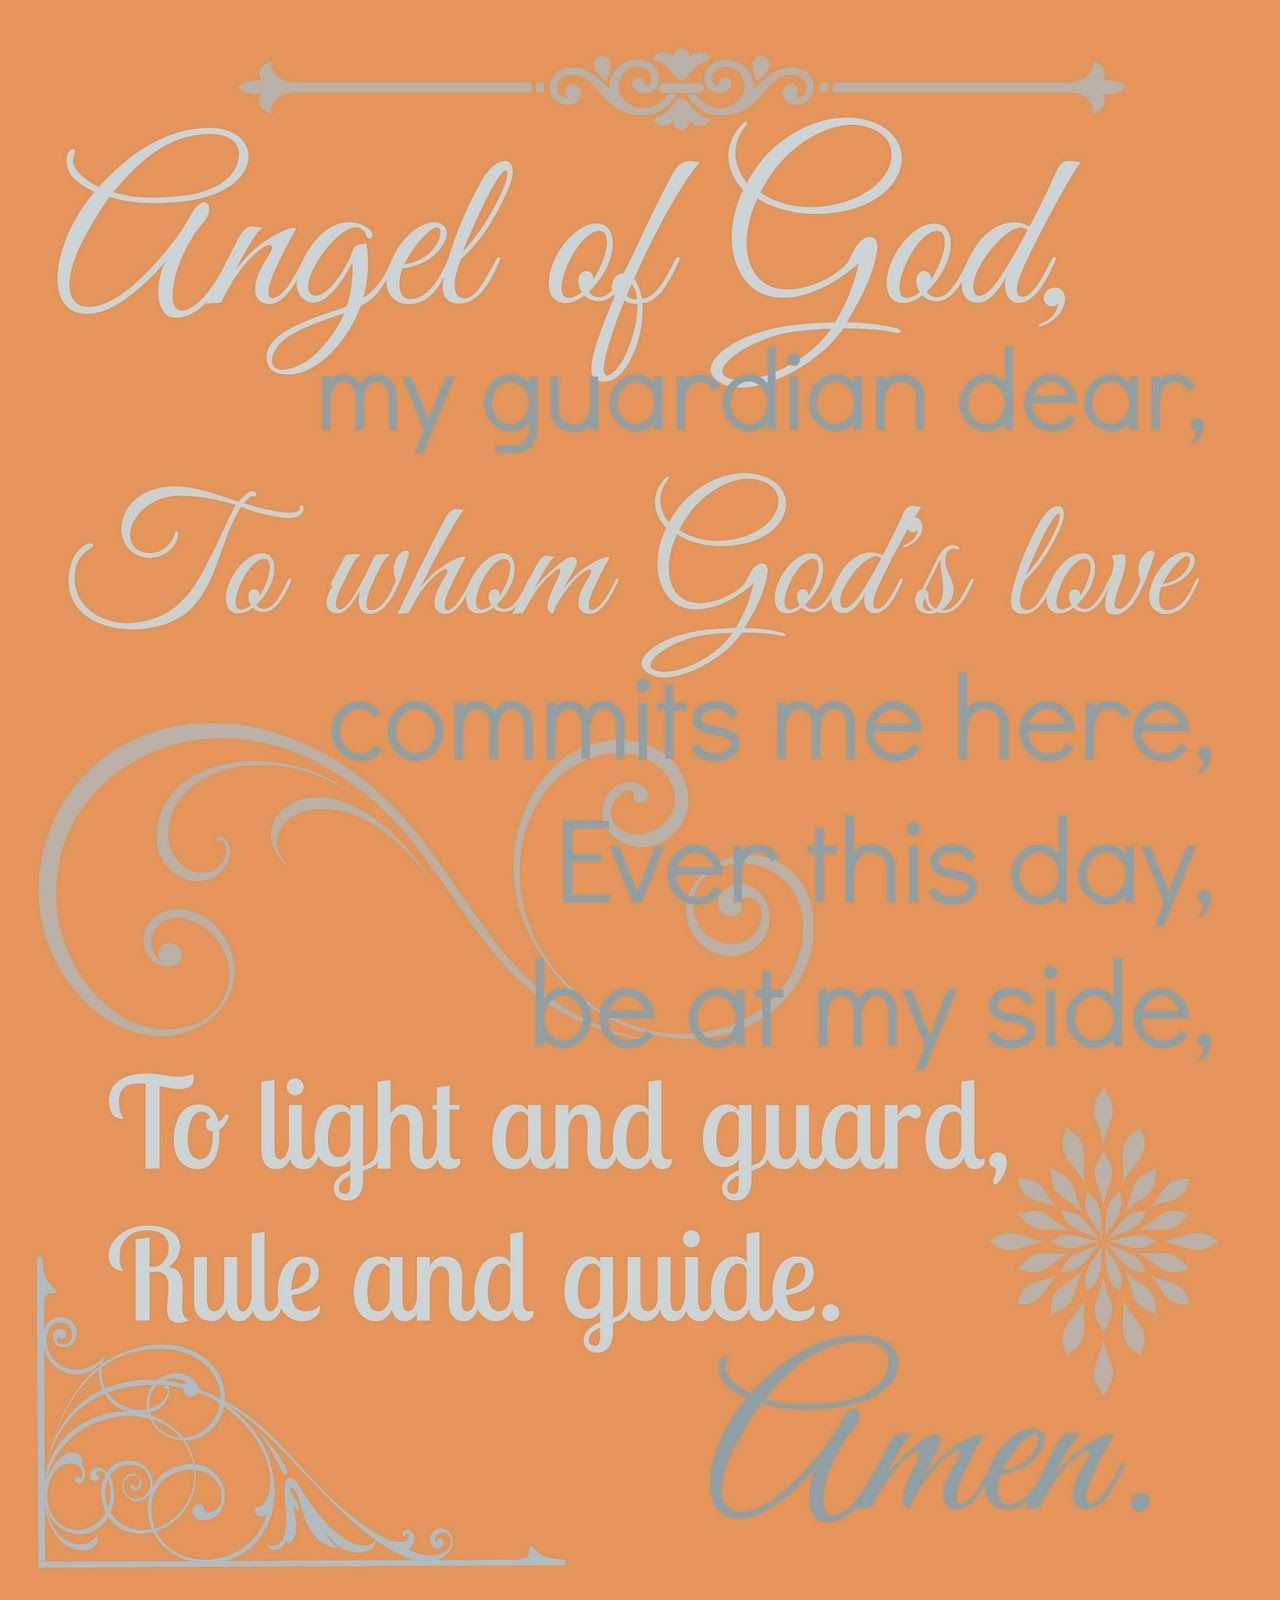 image about Guardian Angel Prayer Printable named Inside of Which there are 7 Free of charge Printable Prayers and hence several